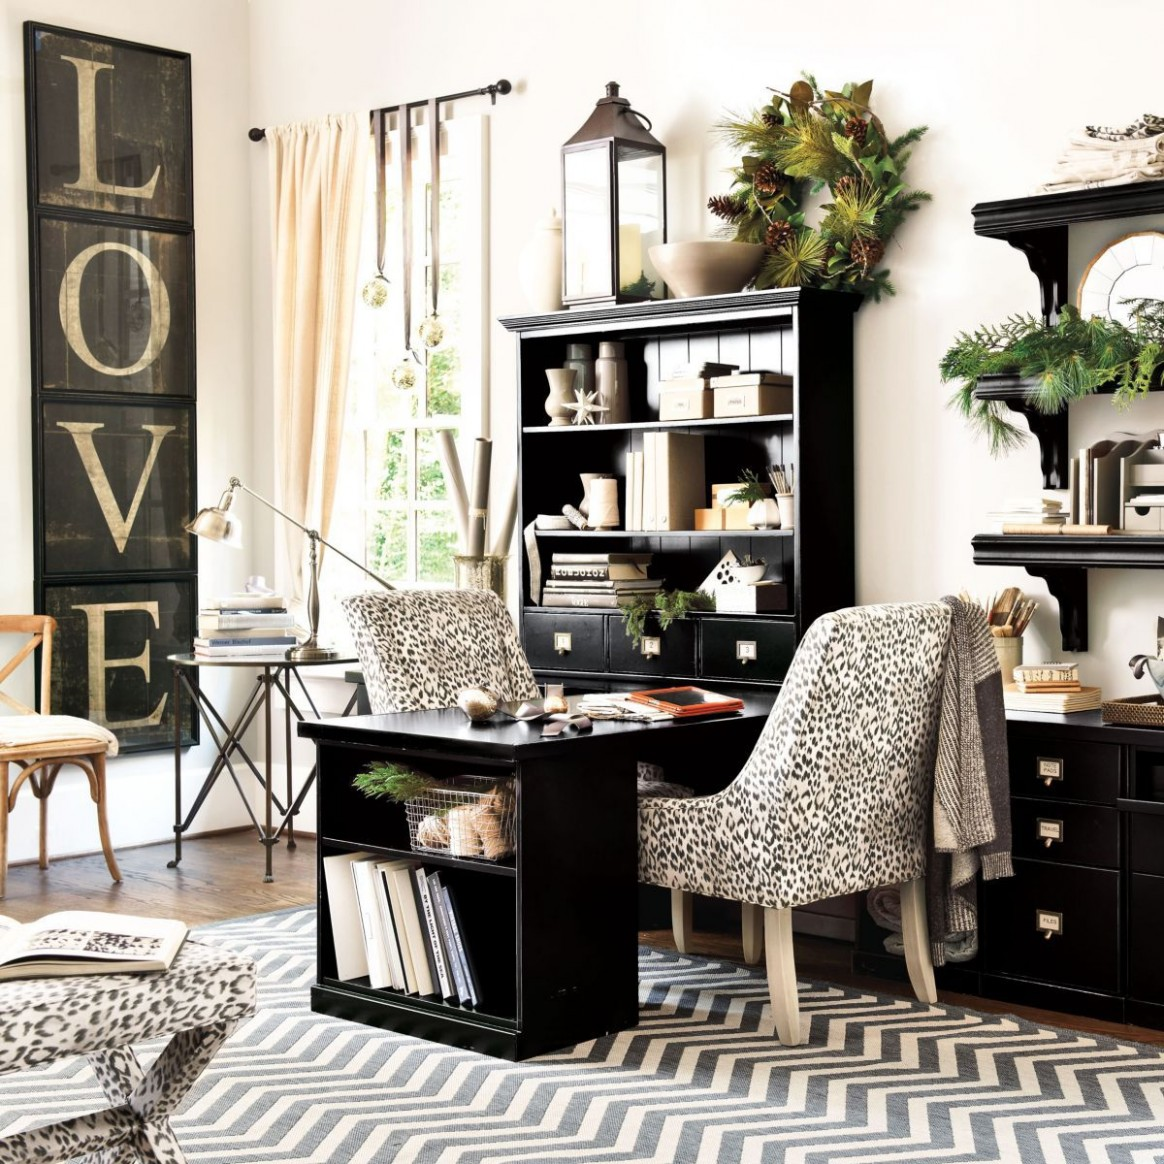 Pin on Interior Design For A Home Office - Home Office Ideas Lamp